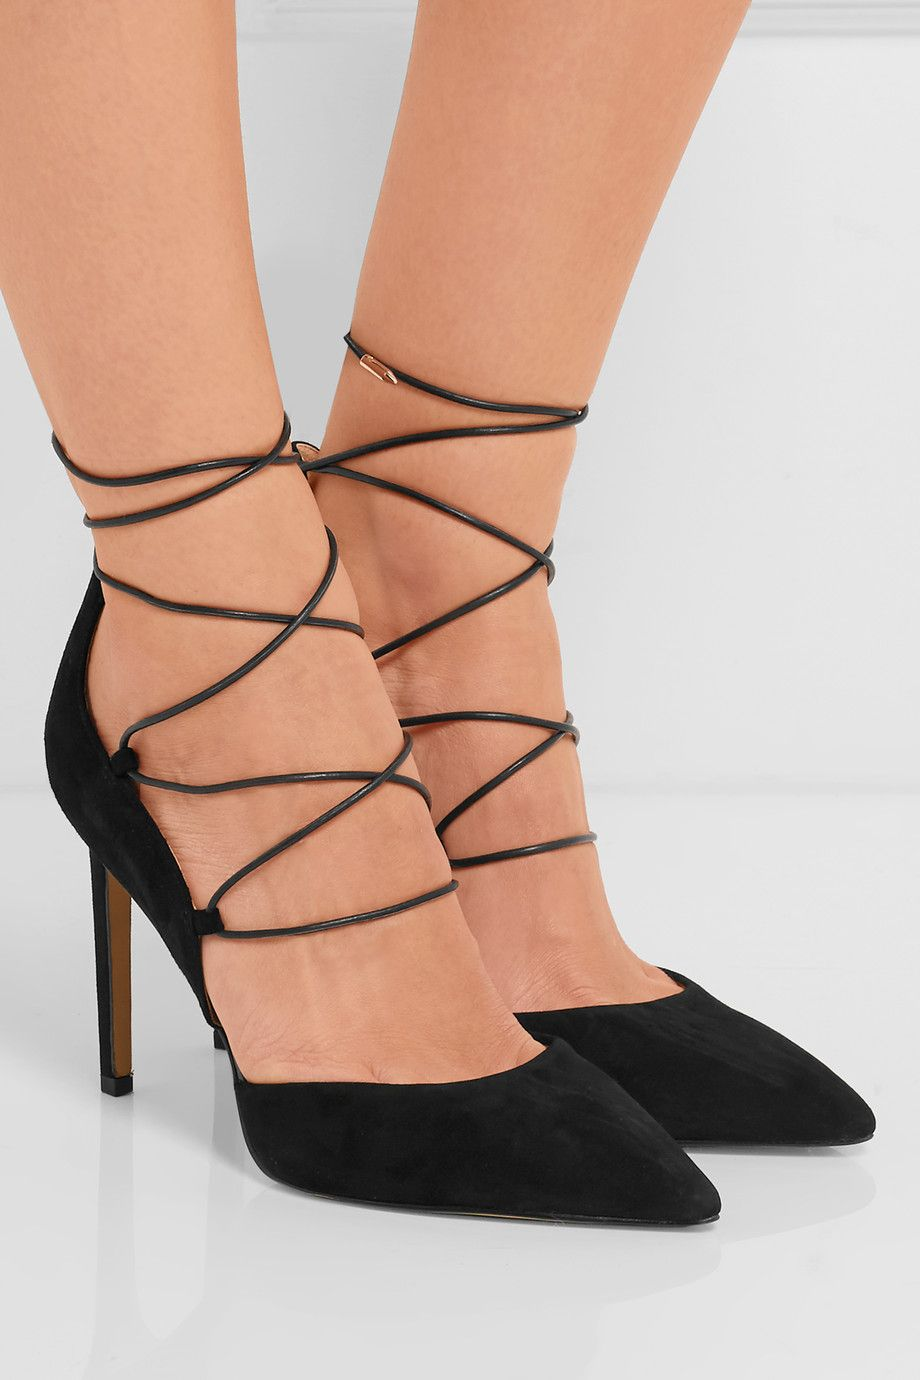 Heel measures approximately 95mm/ 4 inches Black suede Ties at ankle Imported